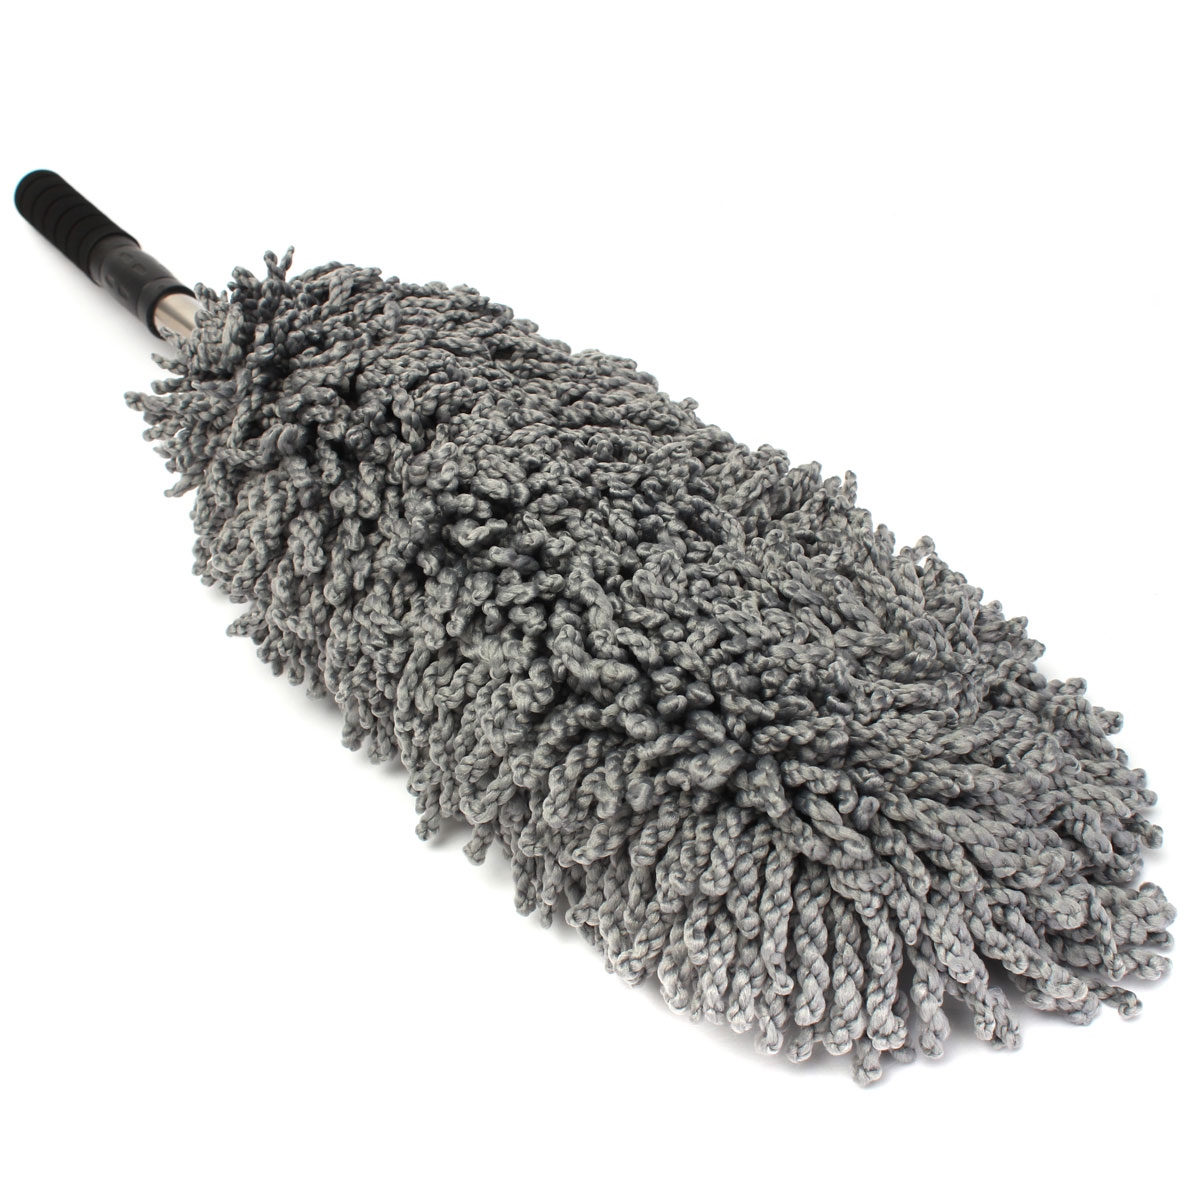 telescoping car wash cleaning brush duster dust wax mop microfiber dusting tool ebay. Black Bedroom Furniture Sets. Home Design Ideas